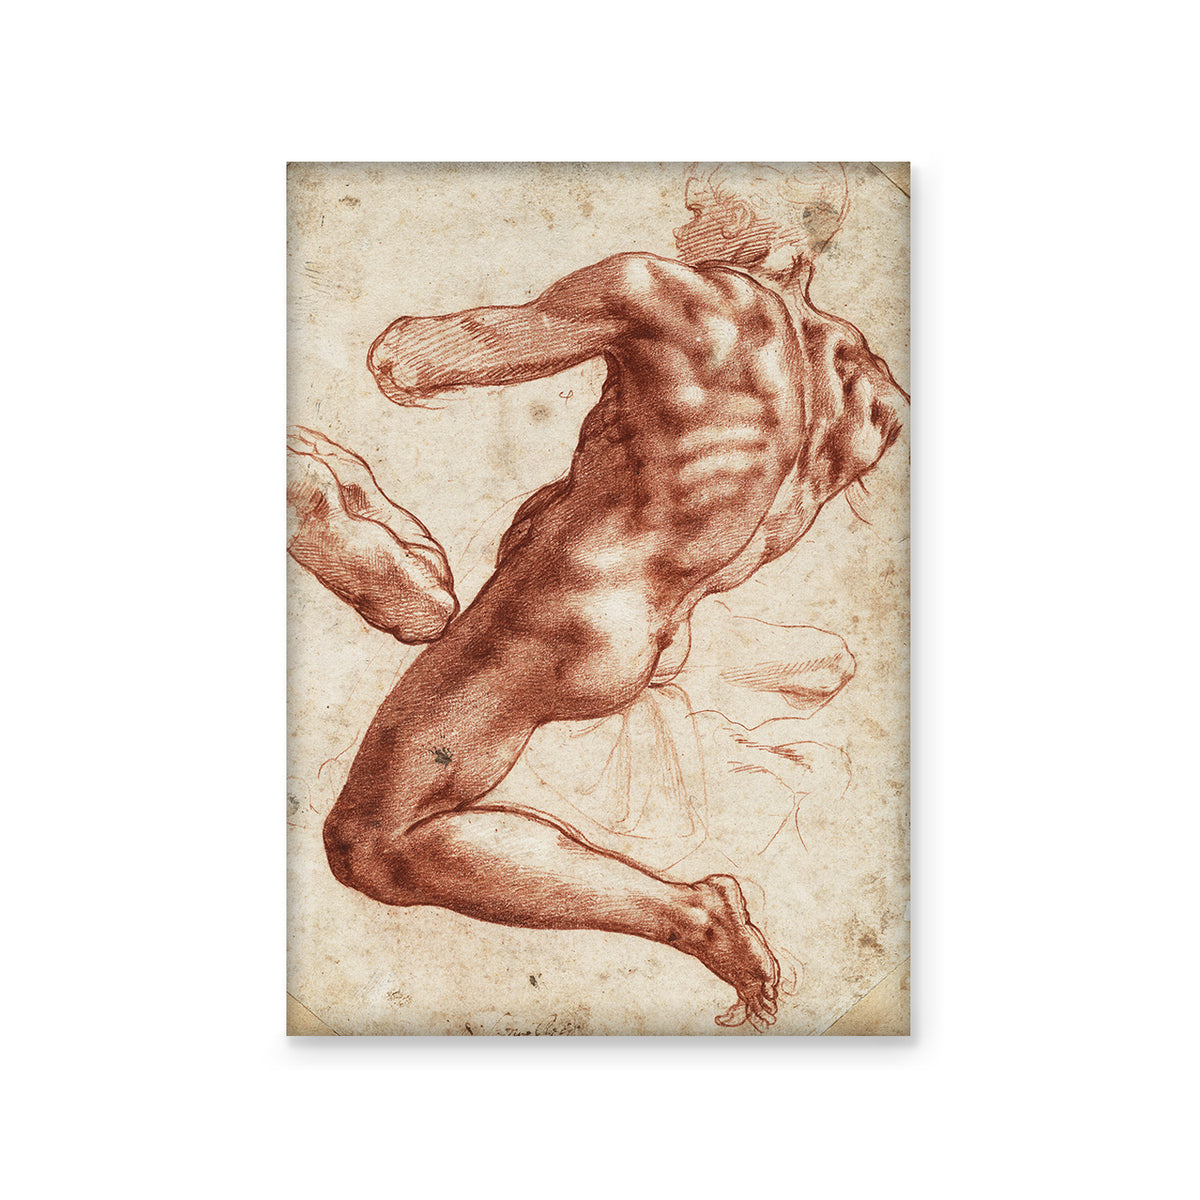 Magnet - Michelangelo Seated Male Nude and a Study of His Right Arm